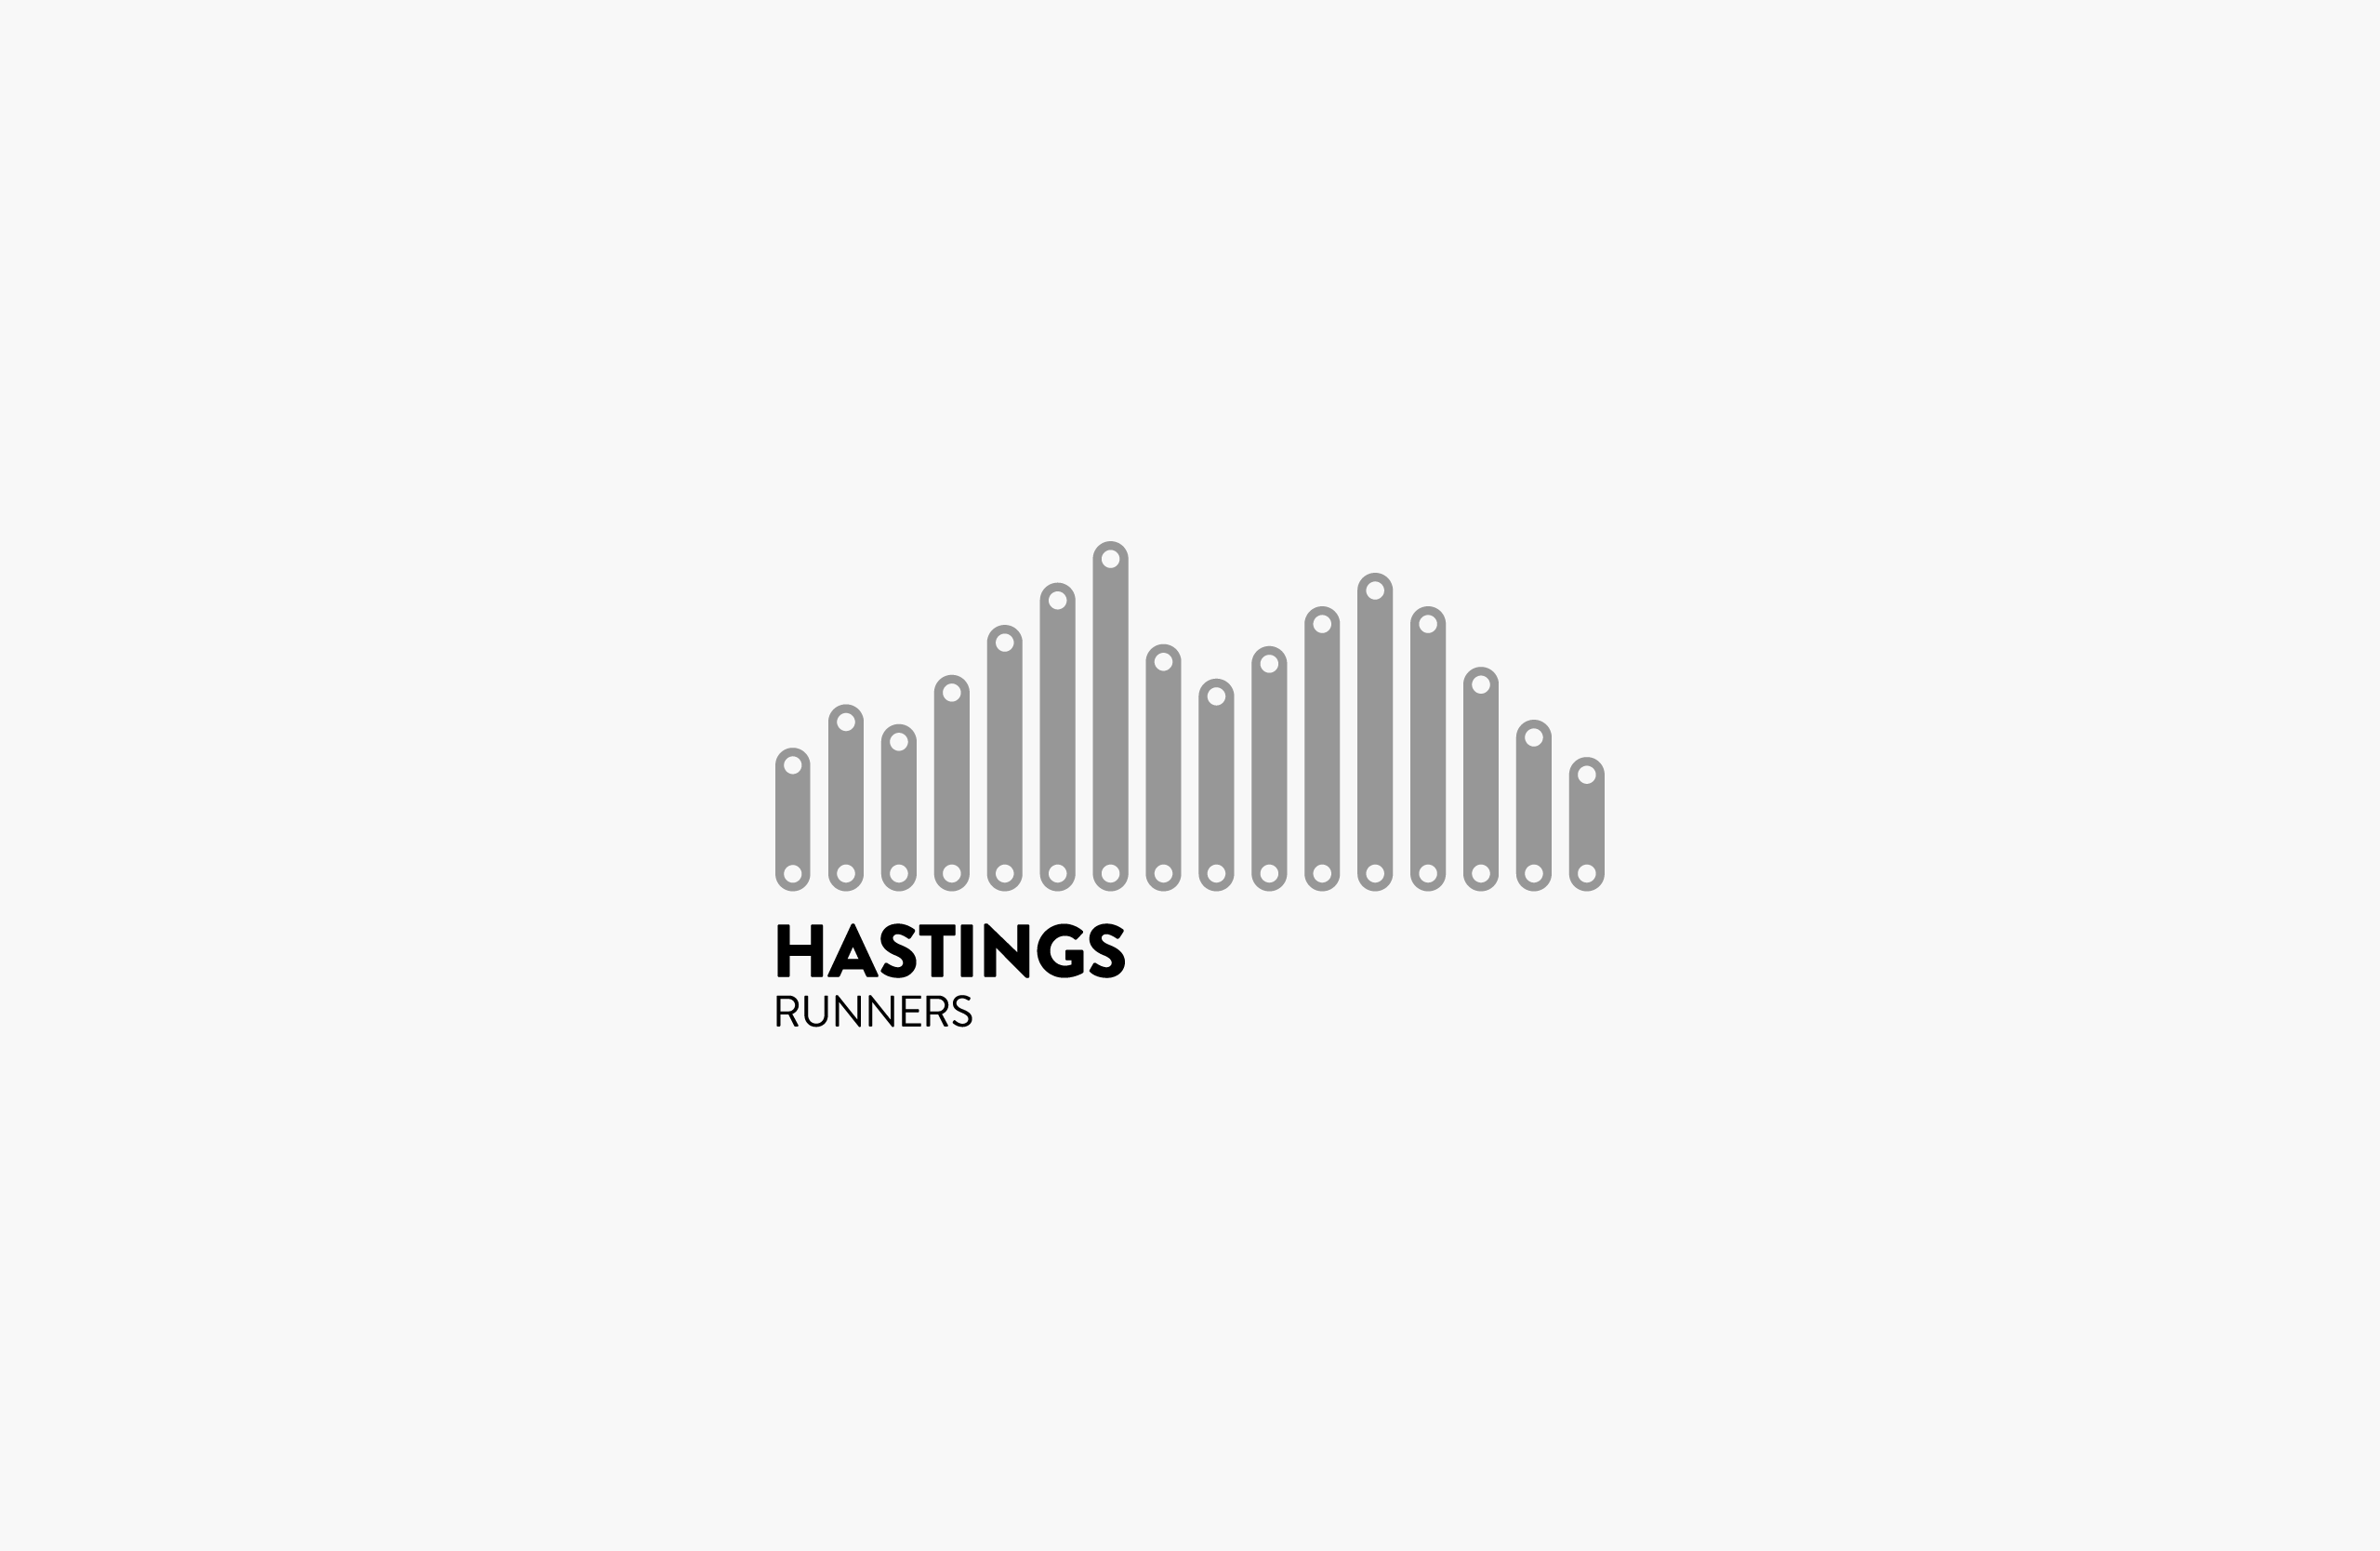 Hasting Runners logo centered on a grey background — by Yagnyuk.